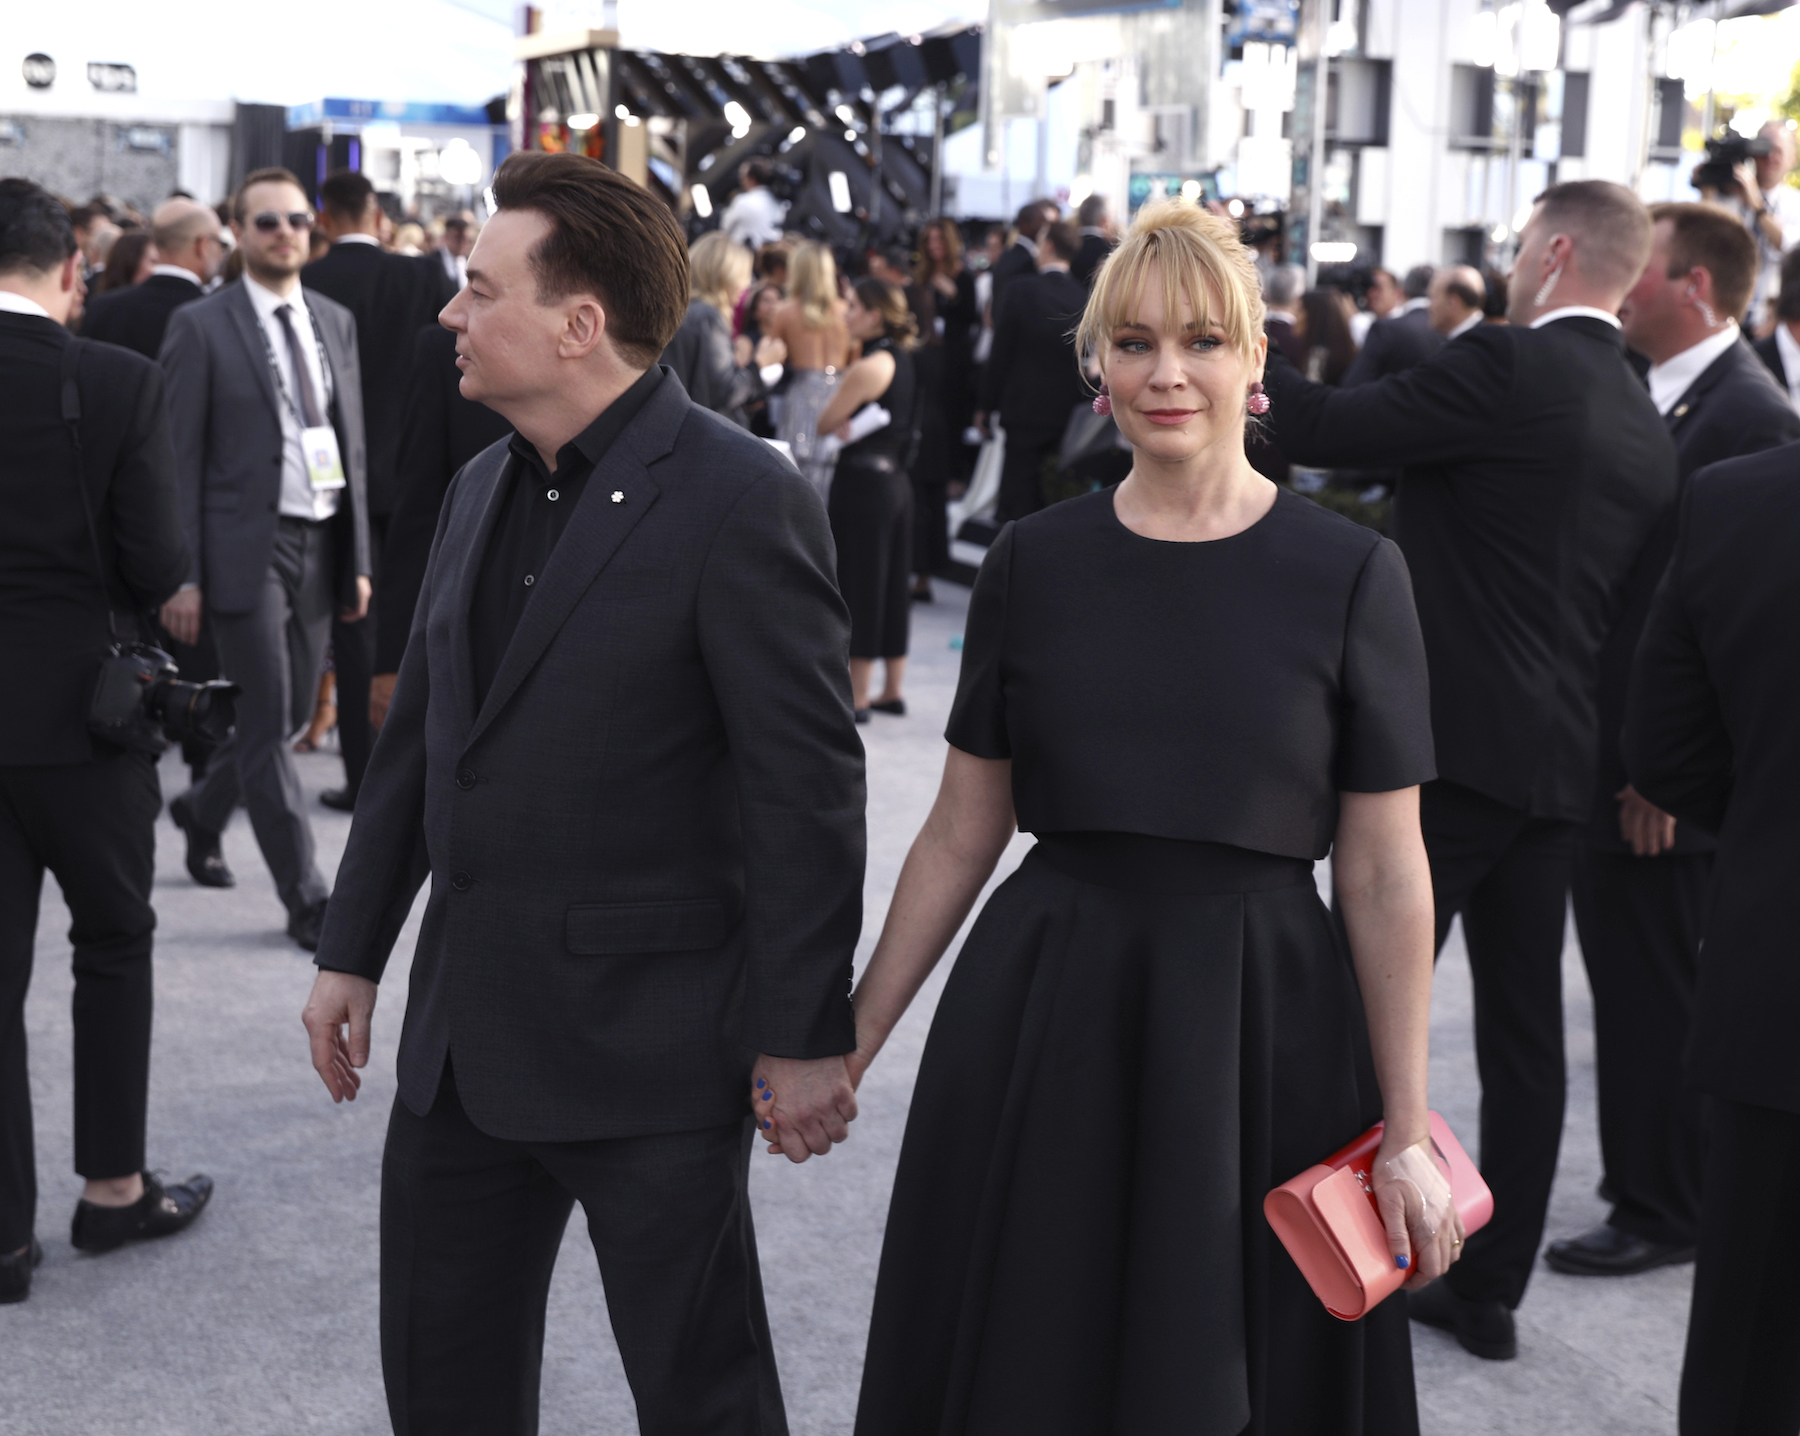 <div class='meta'><div class='origin-logo' data-origin='AP'></div><span class='caption-text' data-credit='Matt Sayles/Invision/AP'>Mike Myers, left, and Kelly Tisdale arrive at the 25th annual Screen Actors Guild Awards at the Shrine Auditorium & Expo Hall on Sunday, Jan. 27, 2019, in Los Angeles.</span></div>